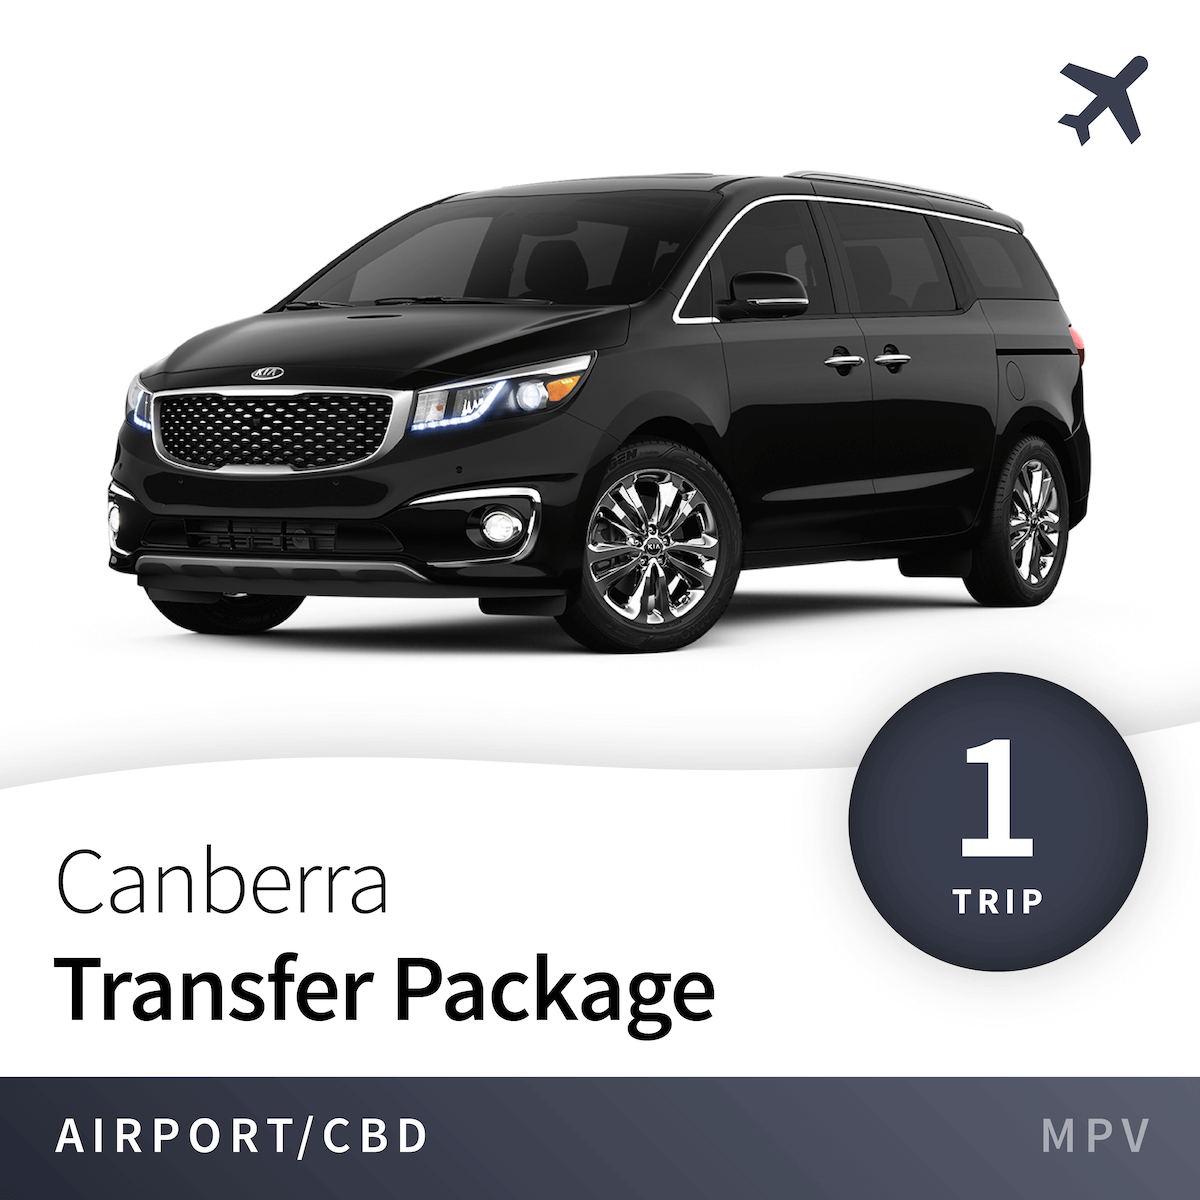 Canberra Airport Transfer Package - MPV (1 Trip) 11